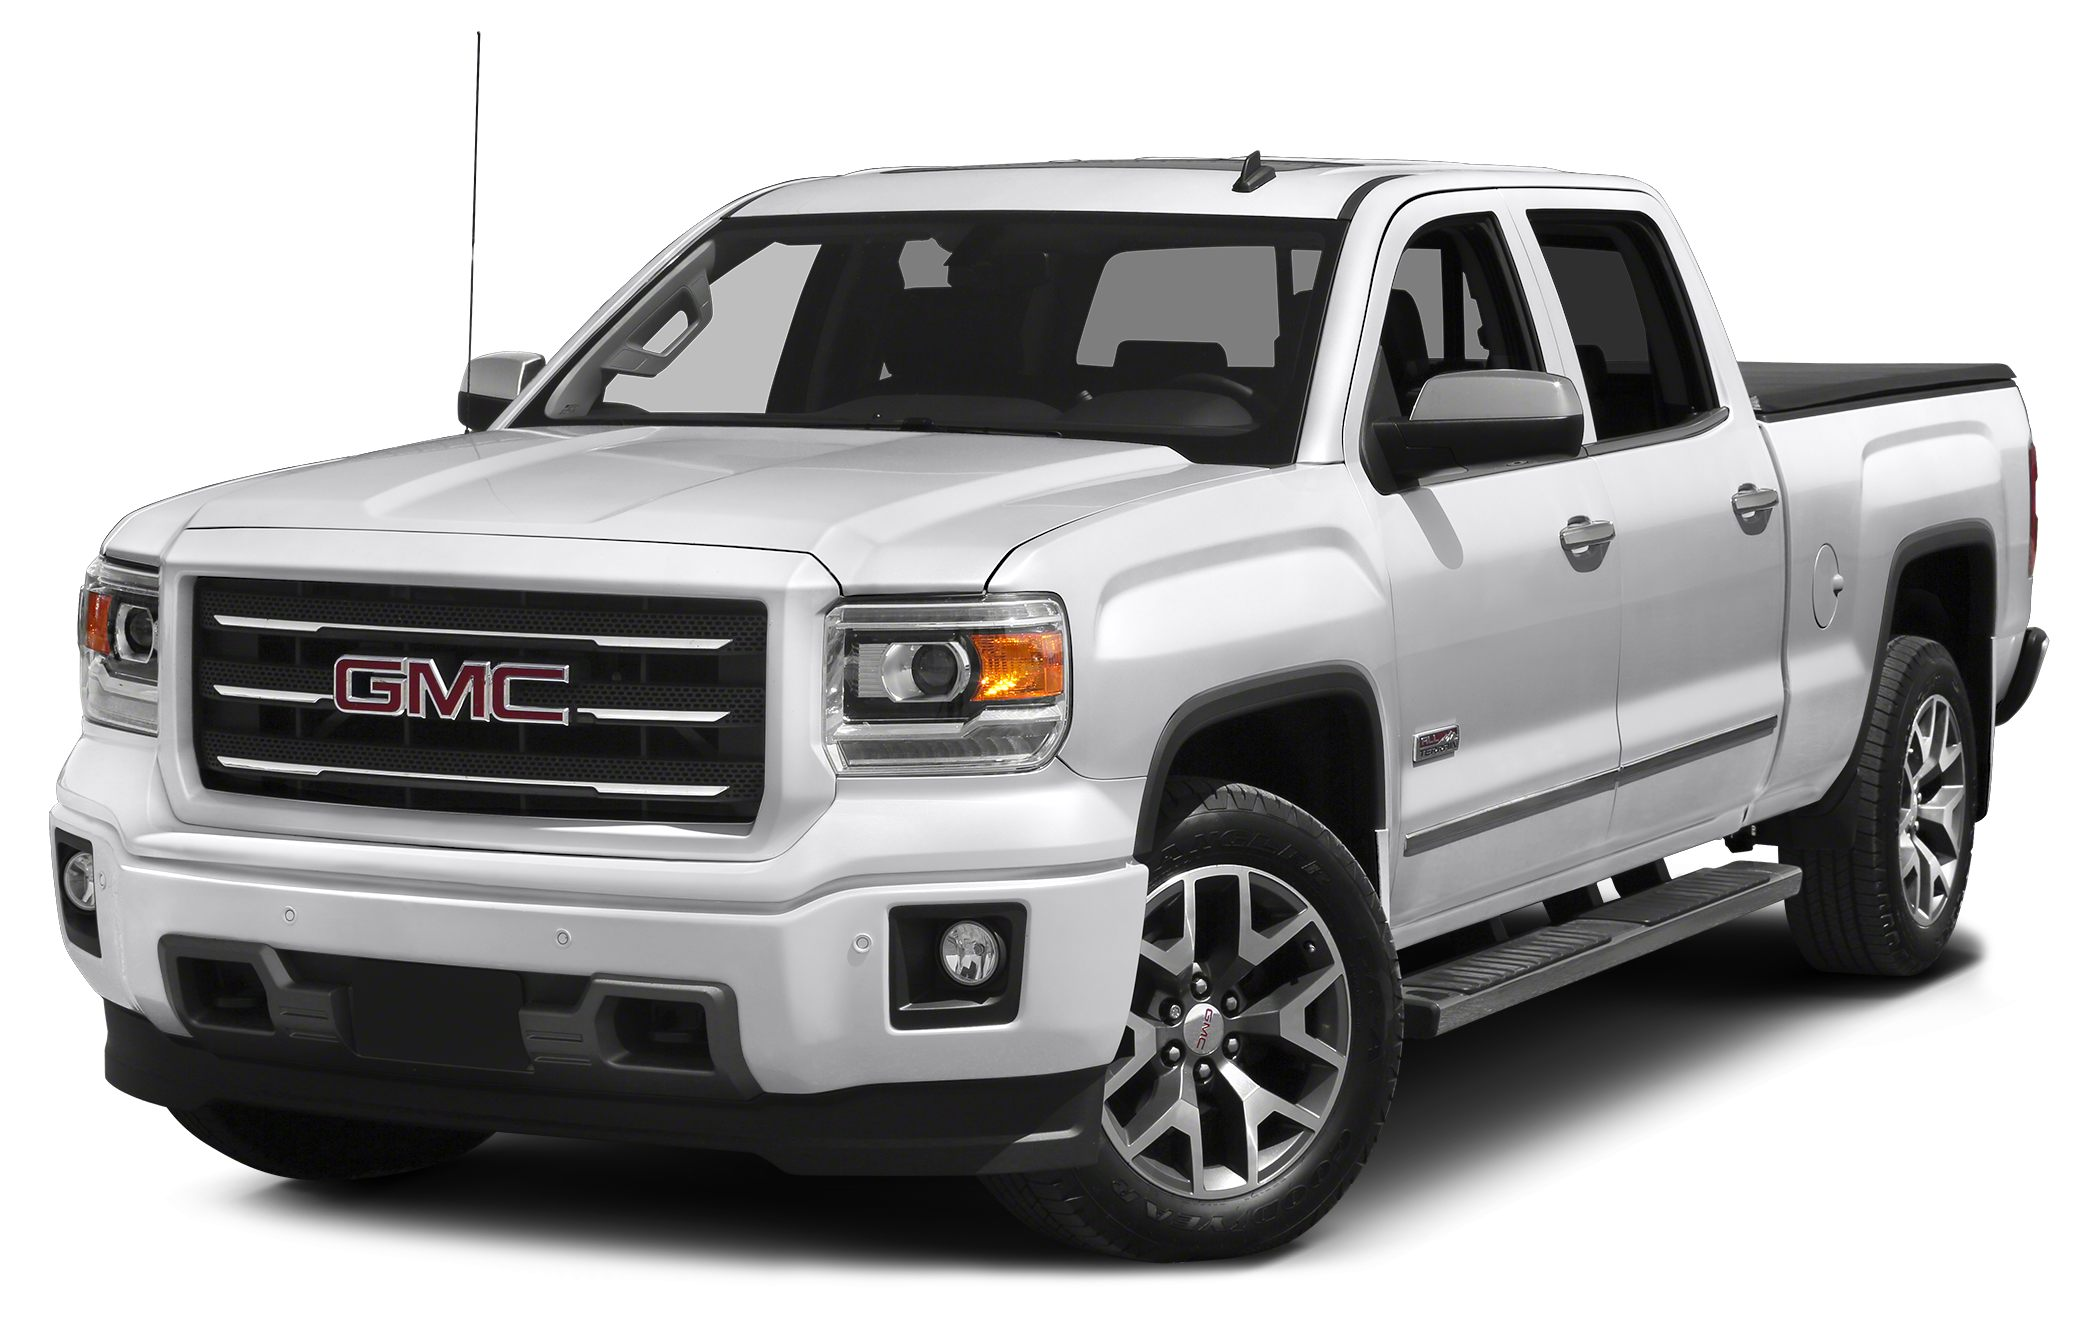 2015 GMC Sierra 1500 SLT Climb into this powerful SLT and experience the kind of driving excitment